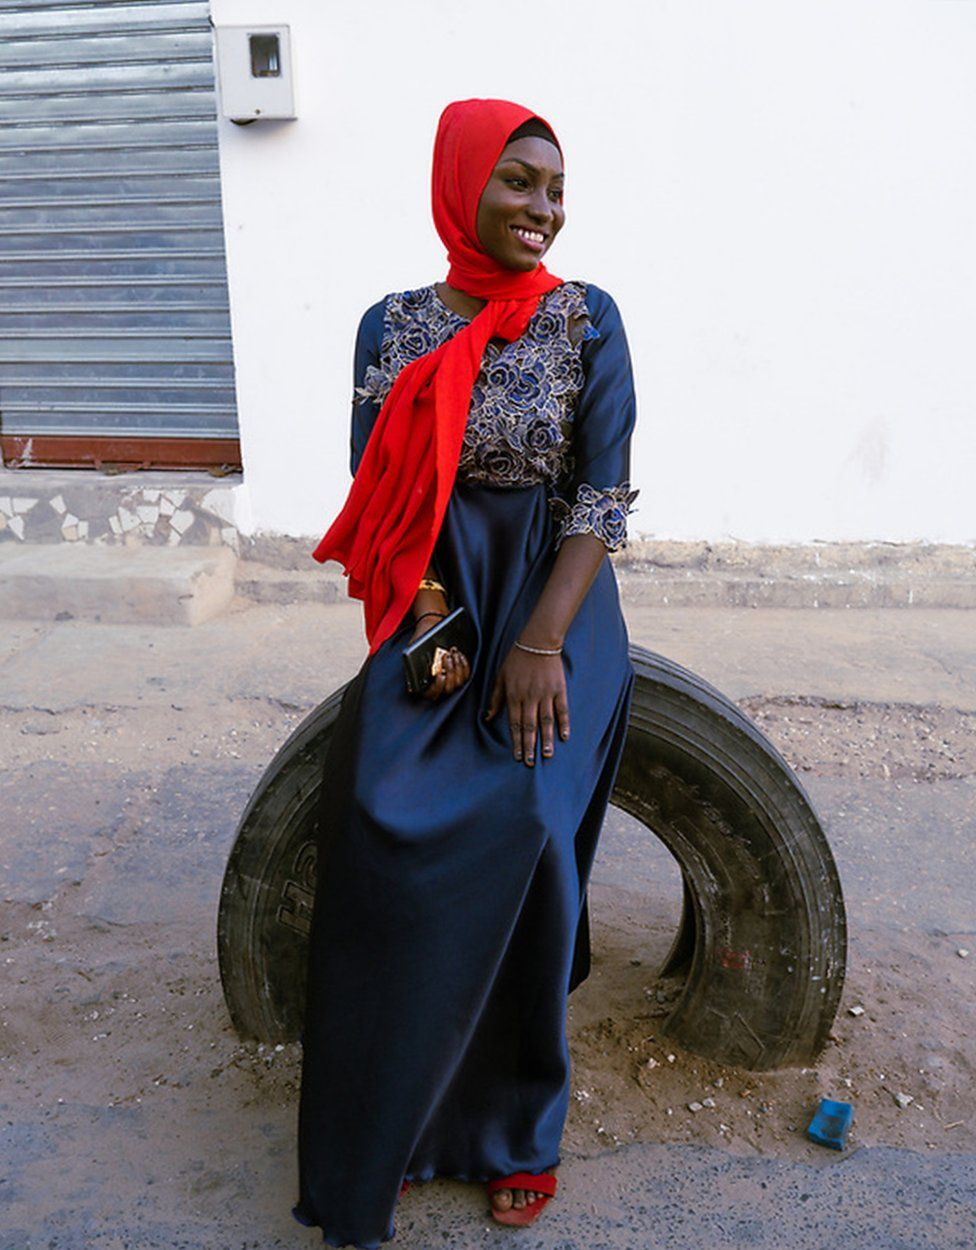 Dienaba Balde wears a blue outfit plus red accessories